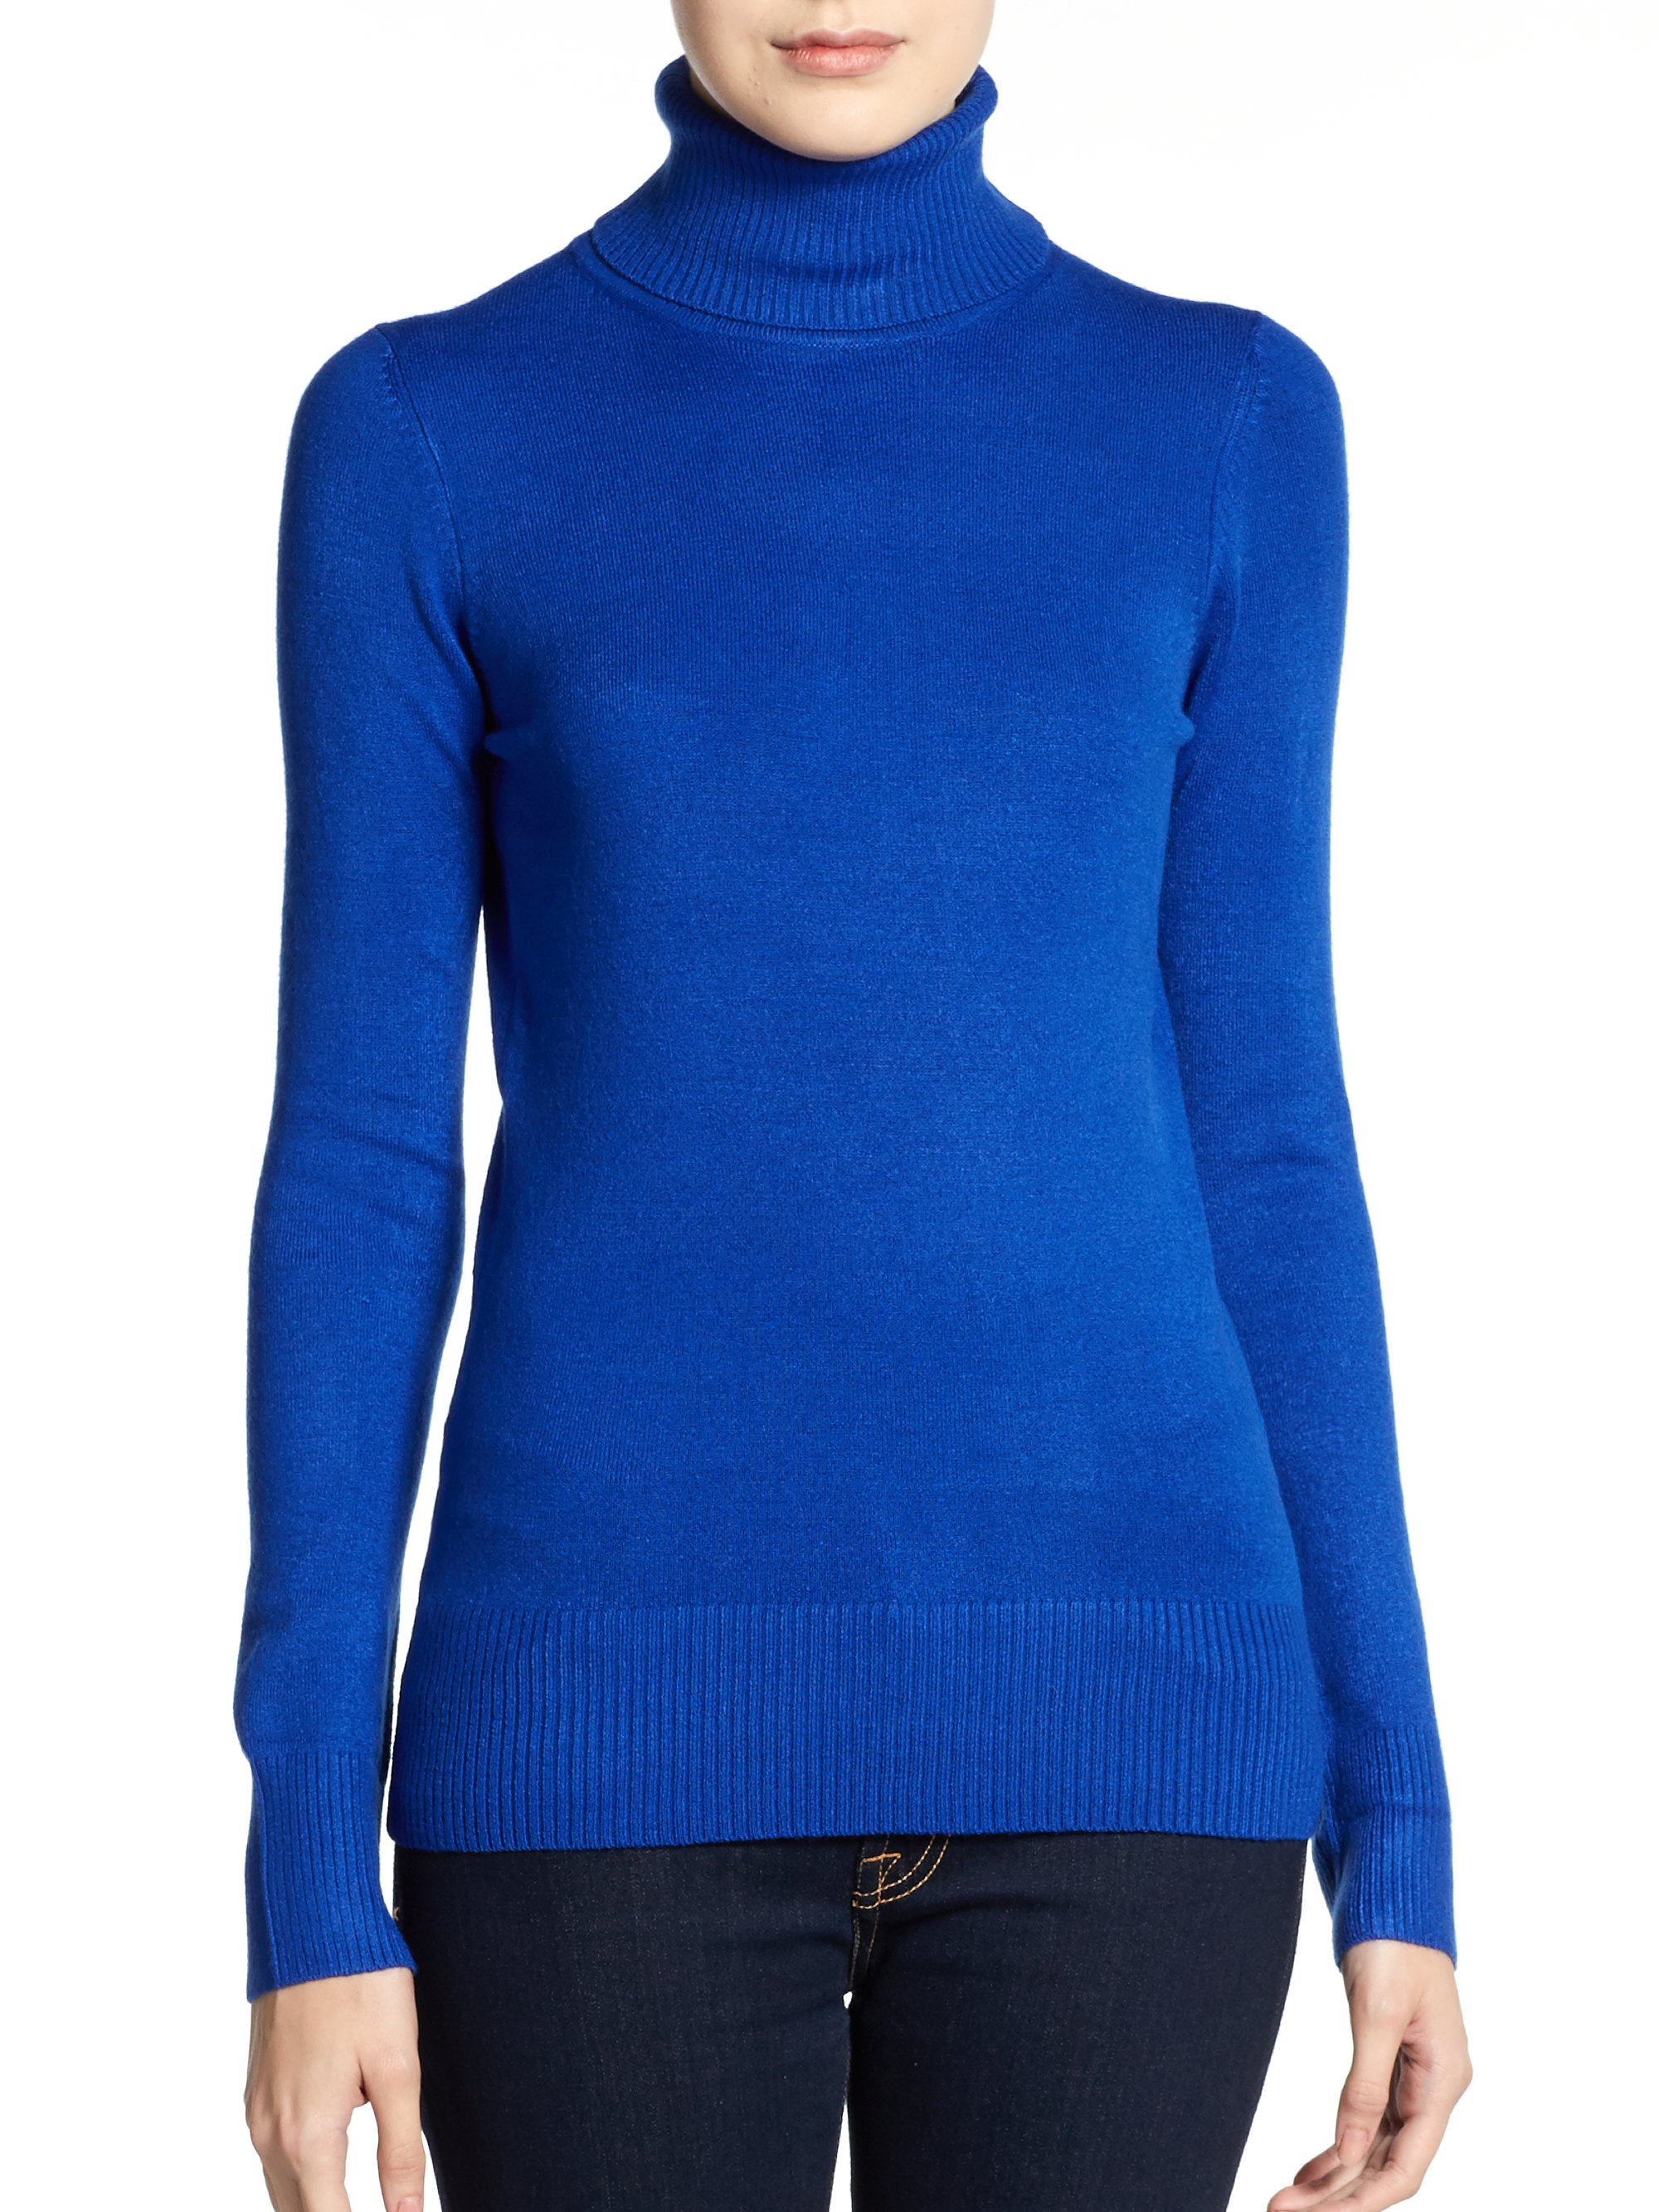 French connection Turtleneck Sweater in Blue | Lyst